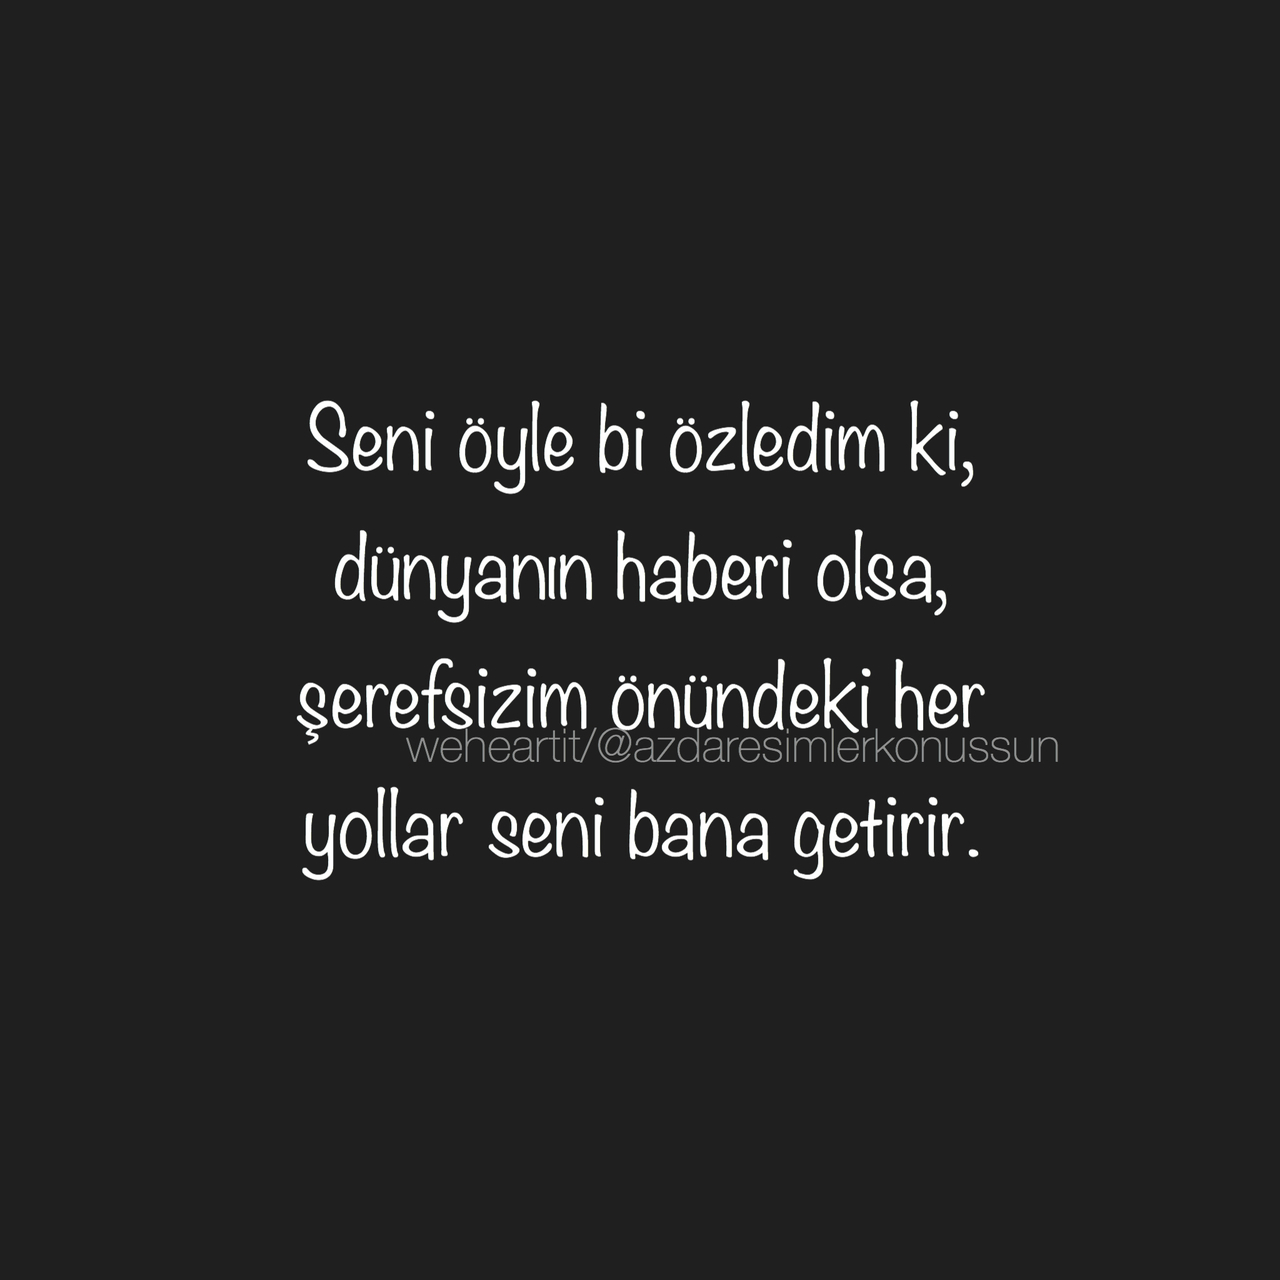 Turkish Quotes About Friendship 36 Images About Turkish Quotes On We Heart It  See More About